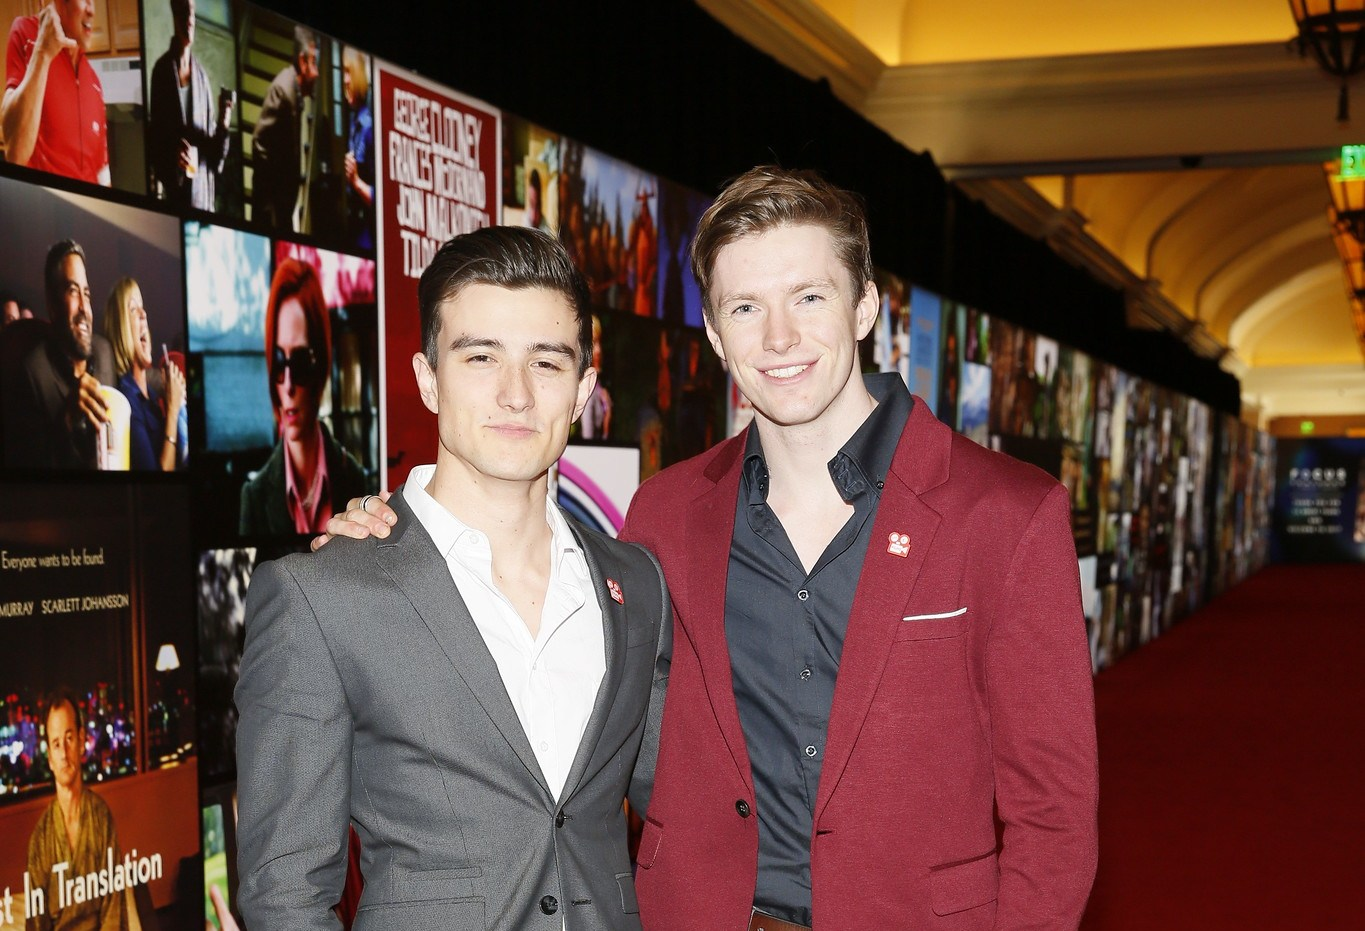 From left, winners Julian Conner and Tom Teller, Chapman University, pose during the Coca-Cola and Regal Film Program Event held at Caesars Palace during CinemaCon, the official convention of the National Association of Theatre Owners, on March 27, 2017 in Las Vegas, Nevada. (Photo by Ryan Miller/Capture Imaging for CinemaCon)